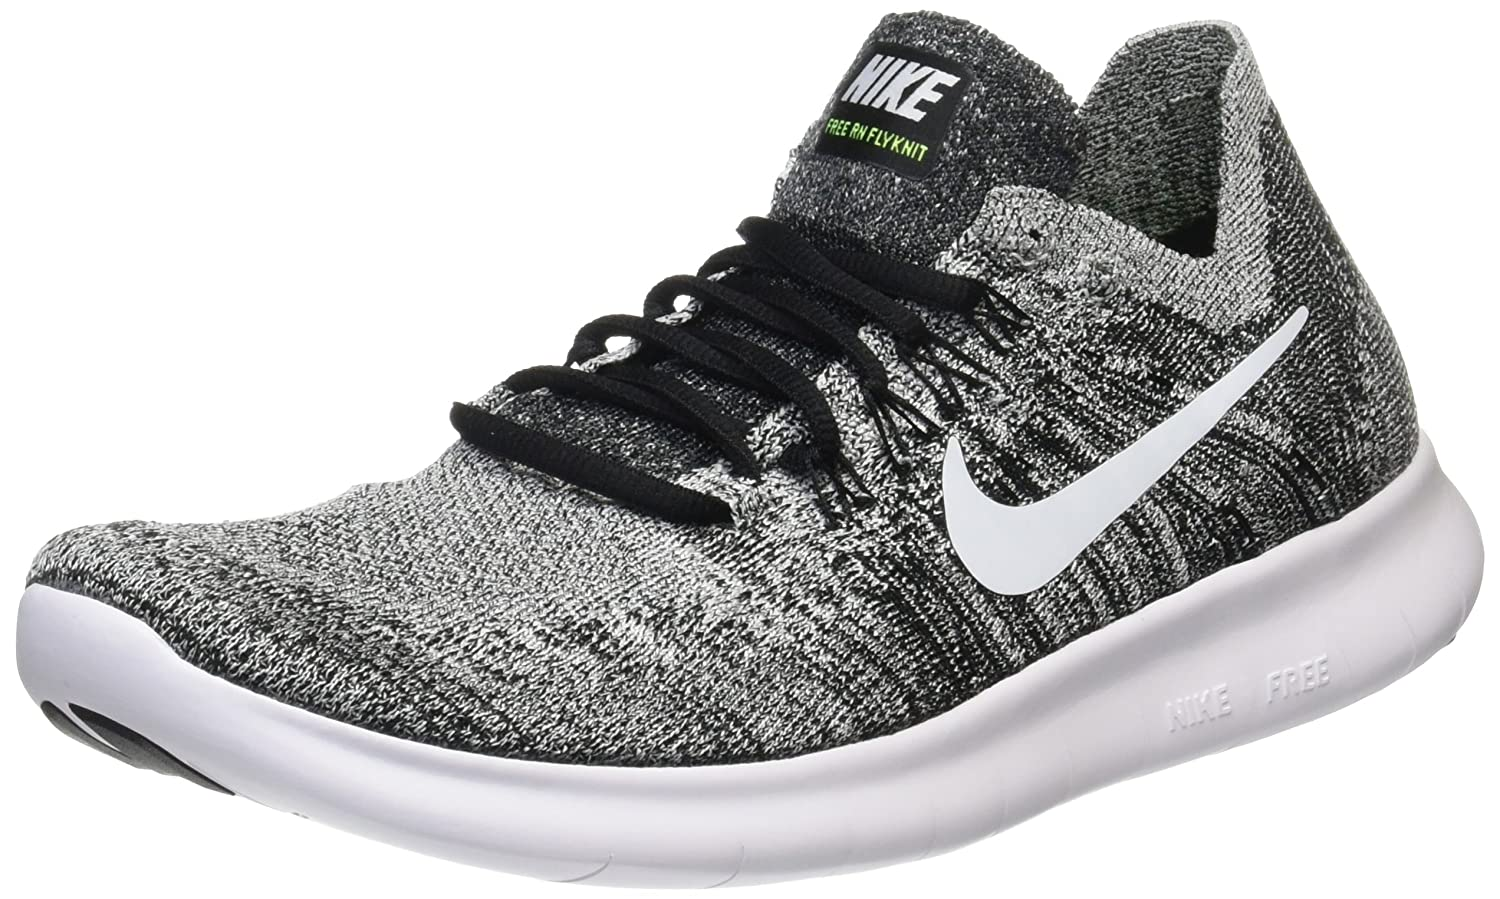 e656a2d4ffc8 Nike Men s Laufschuh Free Run Flyknit 2018 Shoes Black  Amazon.co.uk  Shoes    Bags